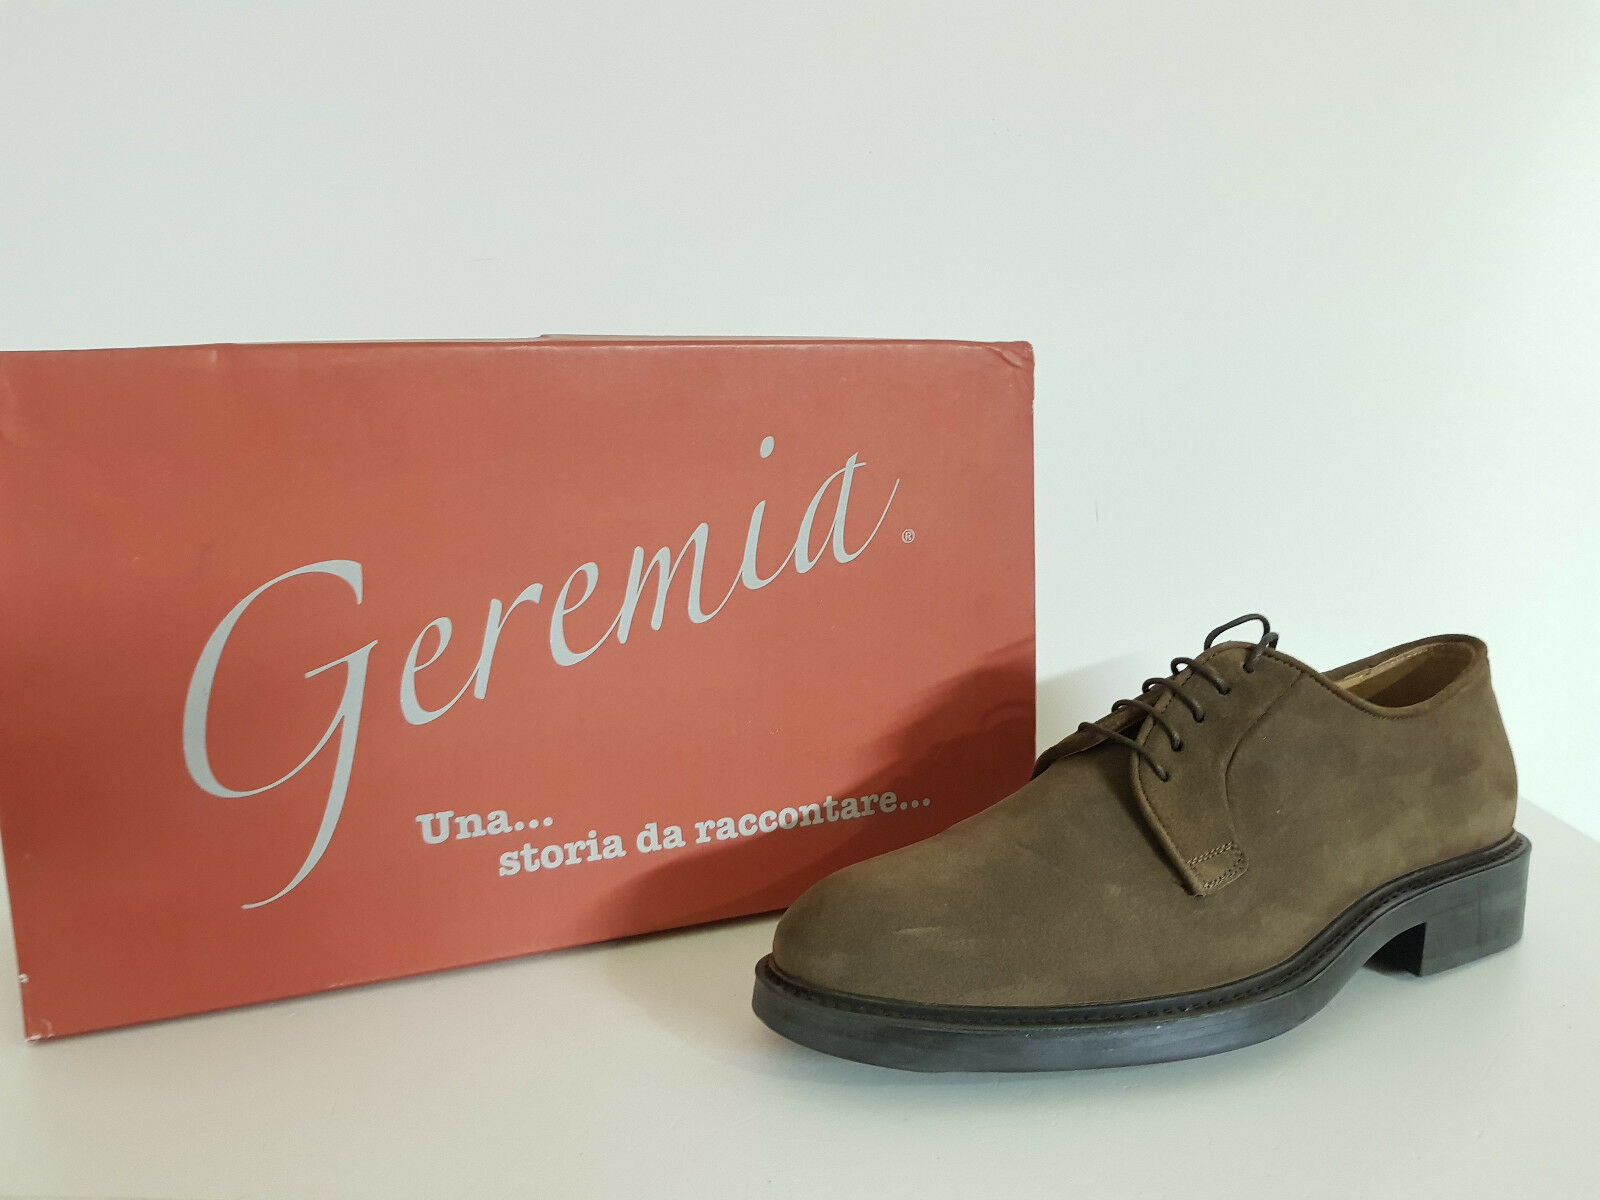 Men's shoes Geremia discount. - 60%no. 605-4971 Velour taupe Col. Brown